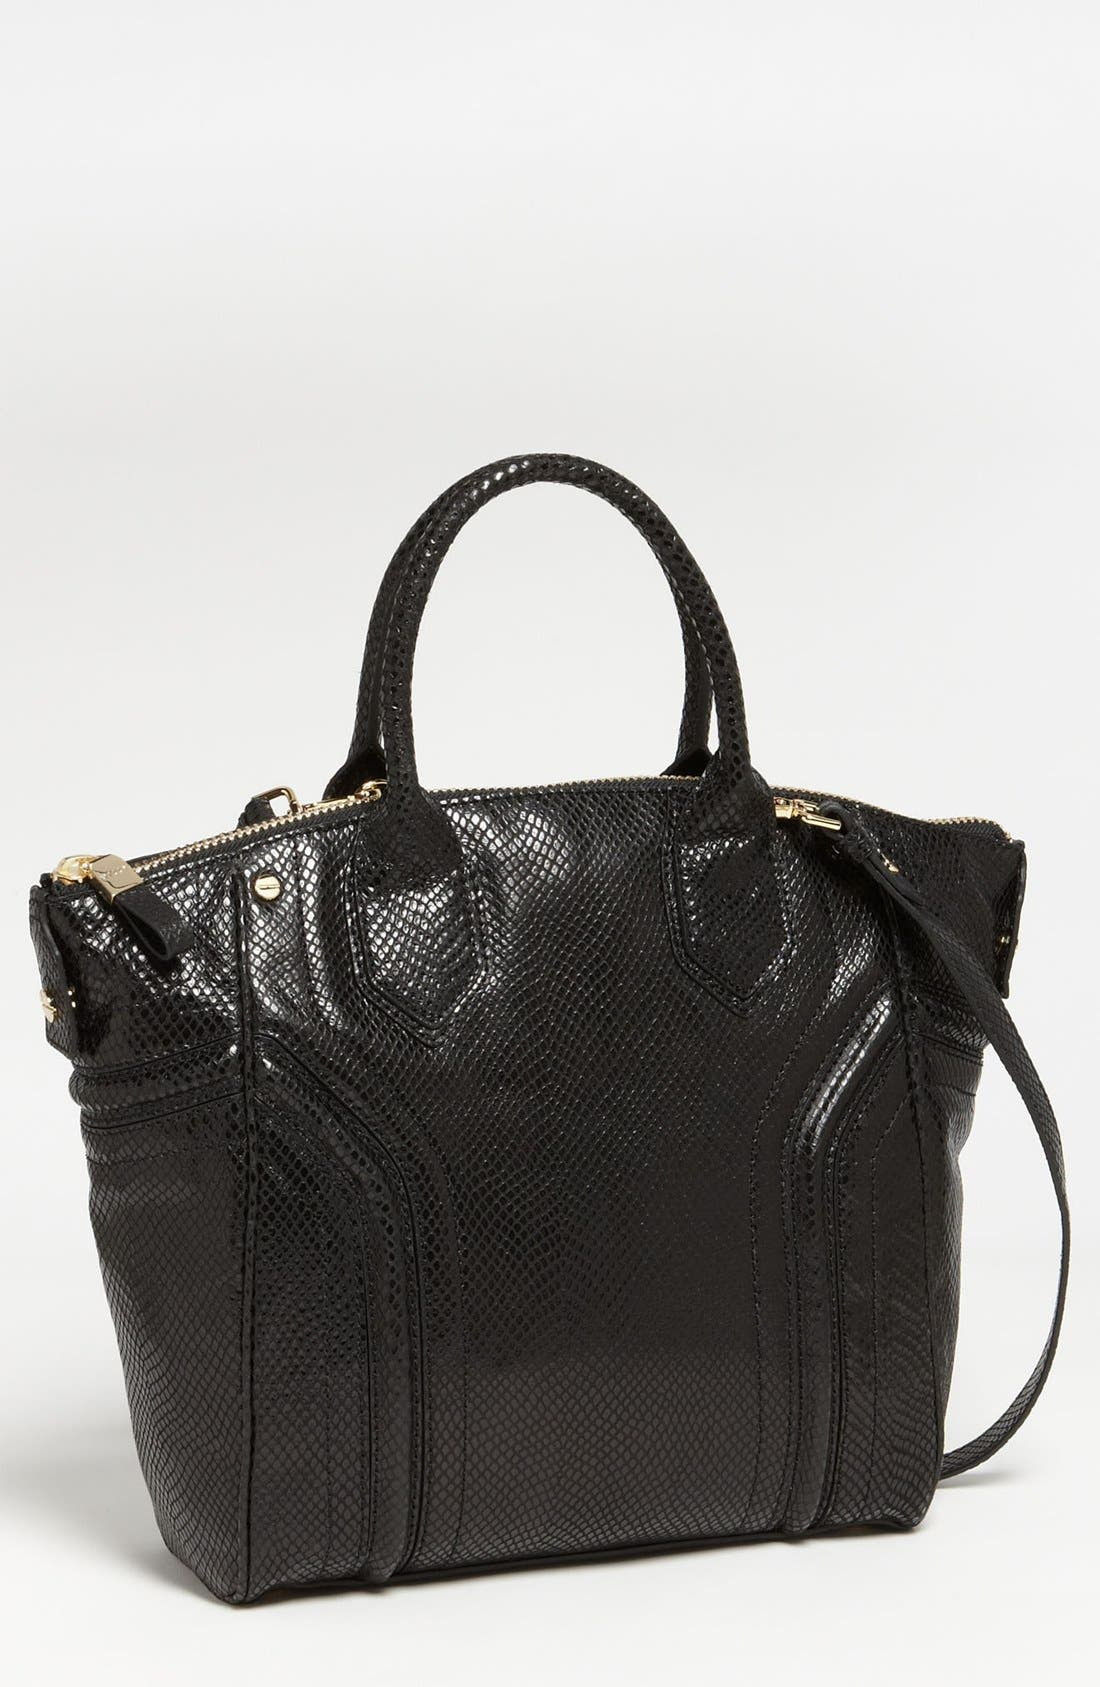 Alternate Image 1 Selected - Milly 'Zoey' Snake Embossed Leather Tote